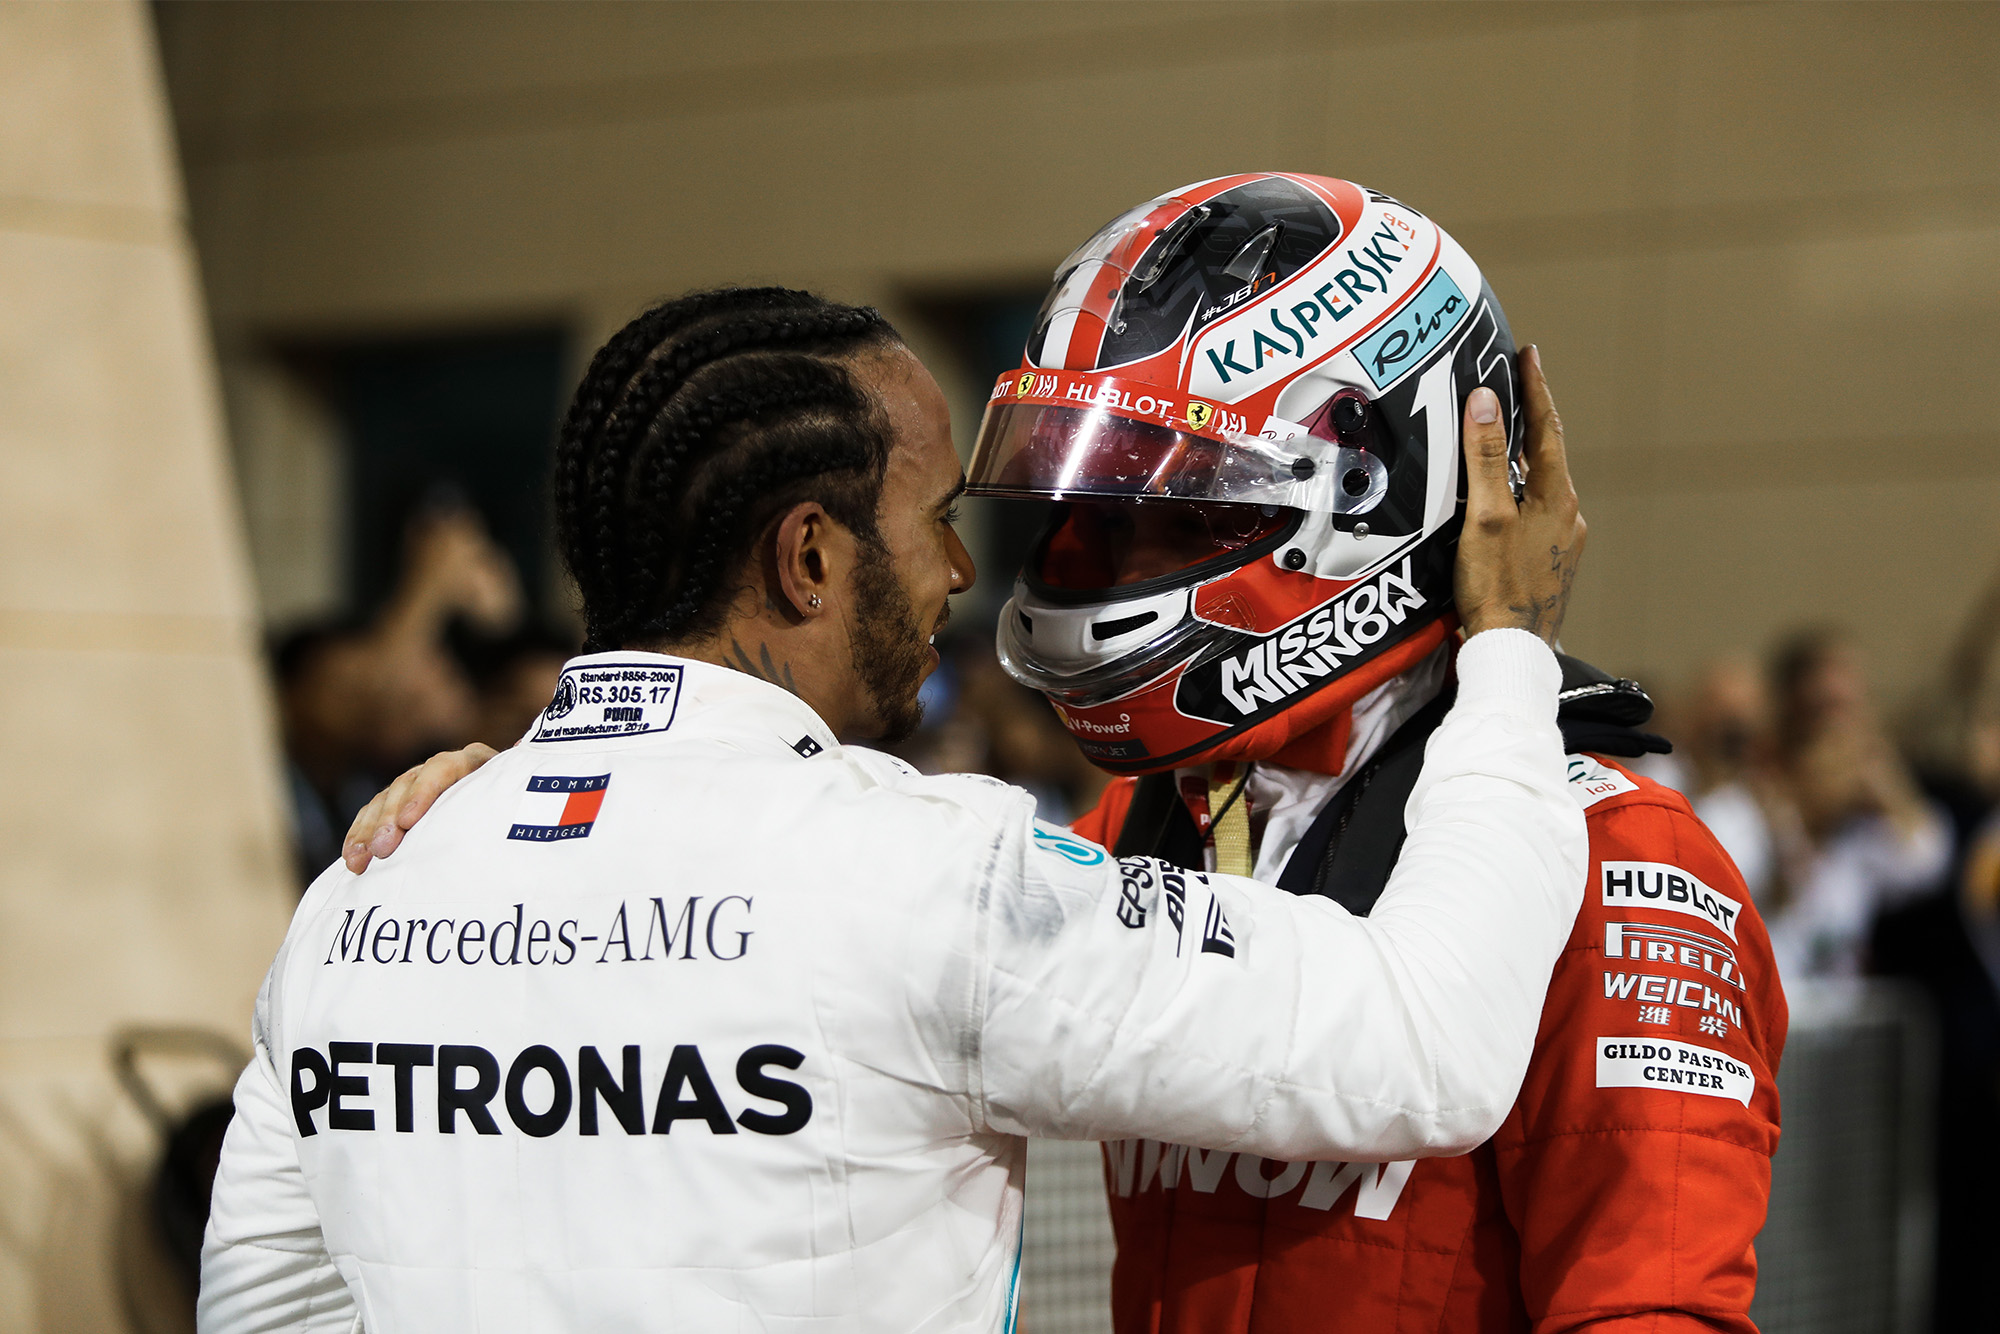 Lewis Hamilton embraces Charles Leclerc after the Bahrain Grand Prix